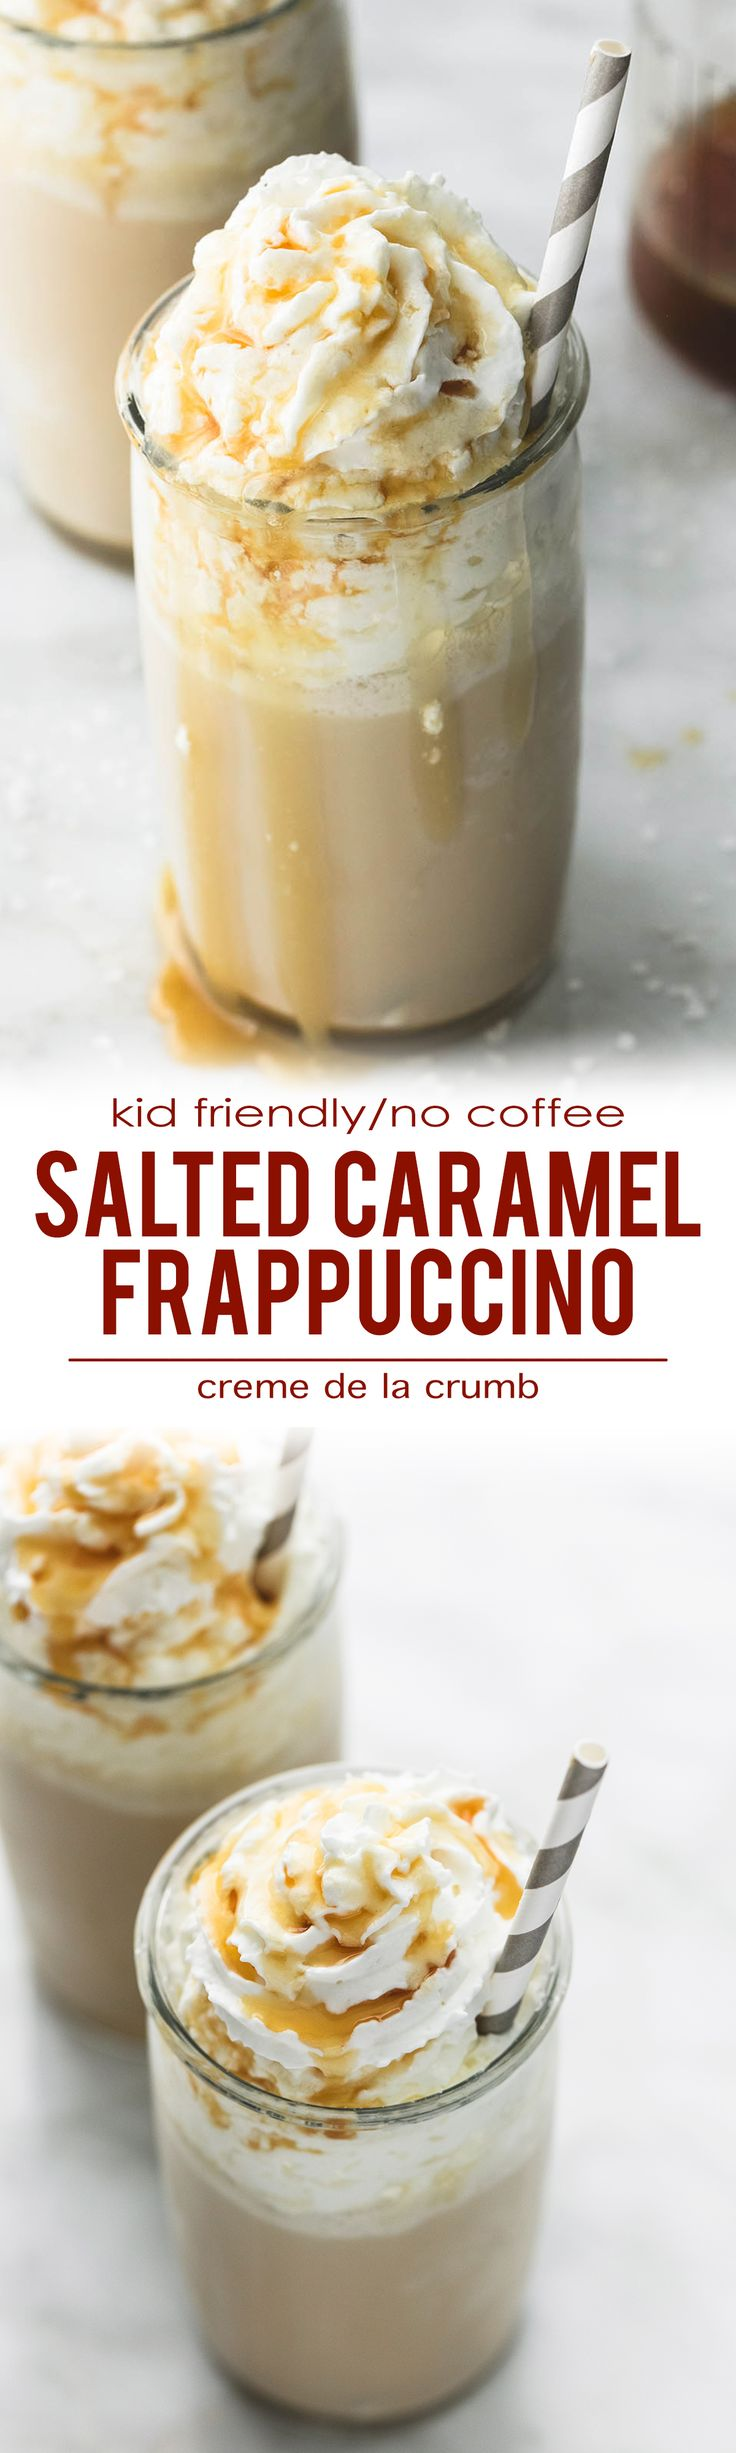 Quick and easy, creamy Salted Caramel Frappuccino (Kid Friendly/No Coffee) | lecremedelacrumb.com